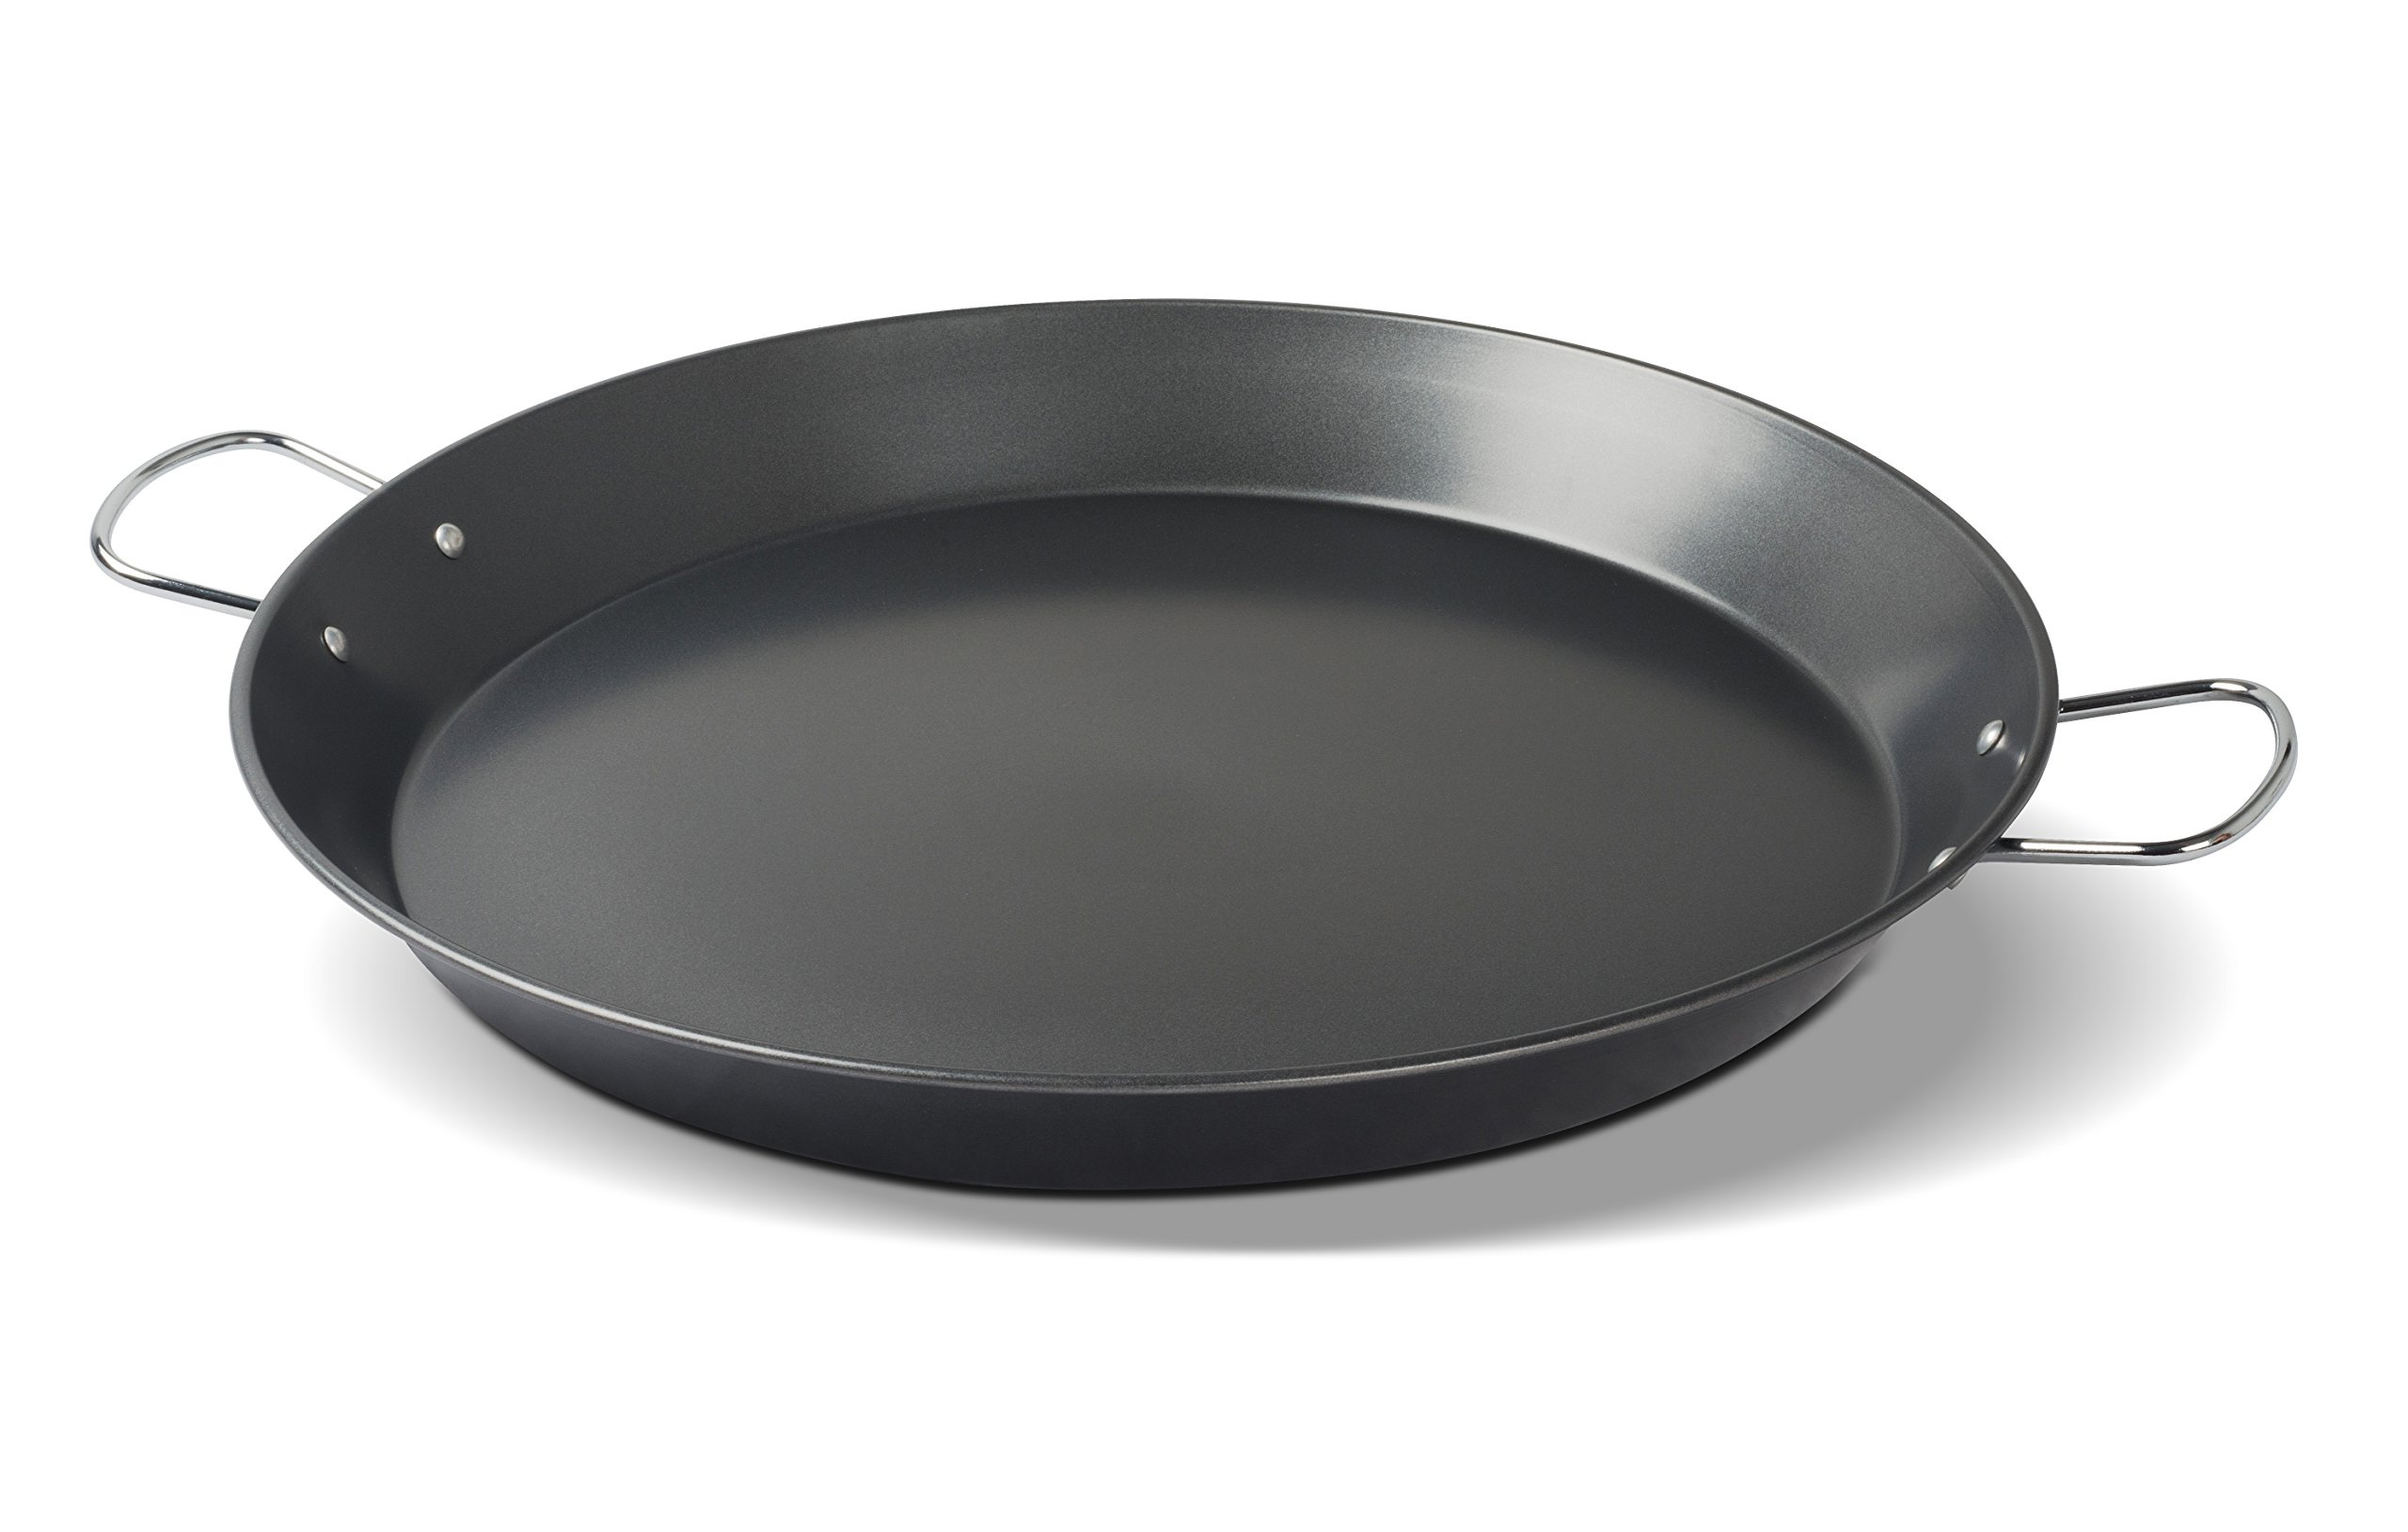 EVERPRIDE Restaurant Spanish Paella Pan | Large (16''), Round, Carbon Steel | Cook Rice, Seafood, Jambalaya | Stove, Grill, and Burner Safe | Riveted Carrying Handles | 5-8 Servings